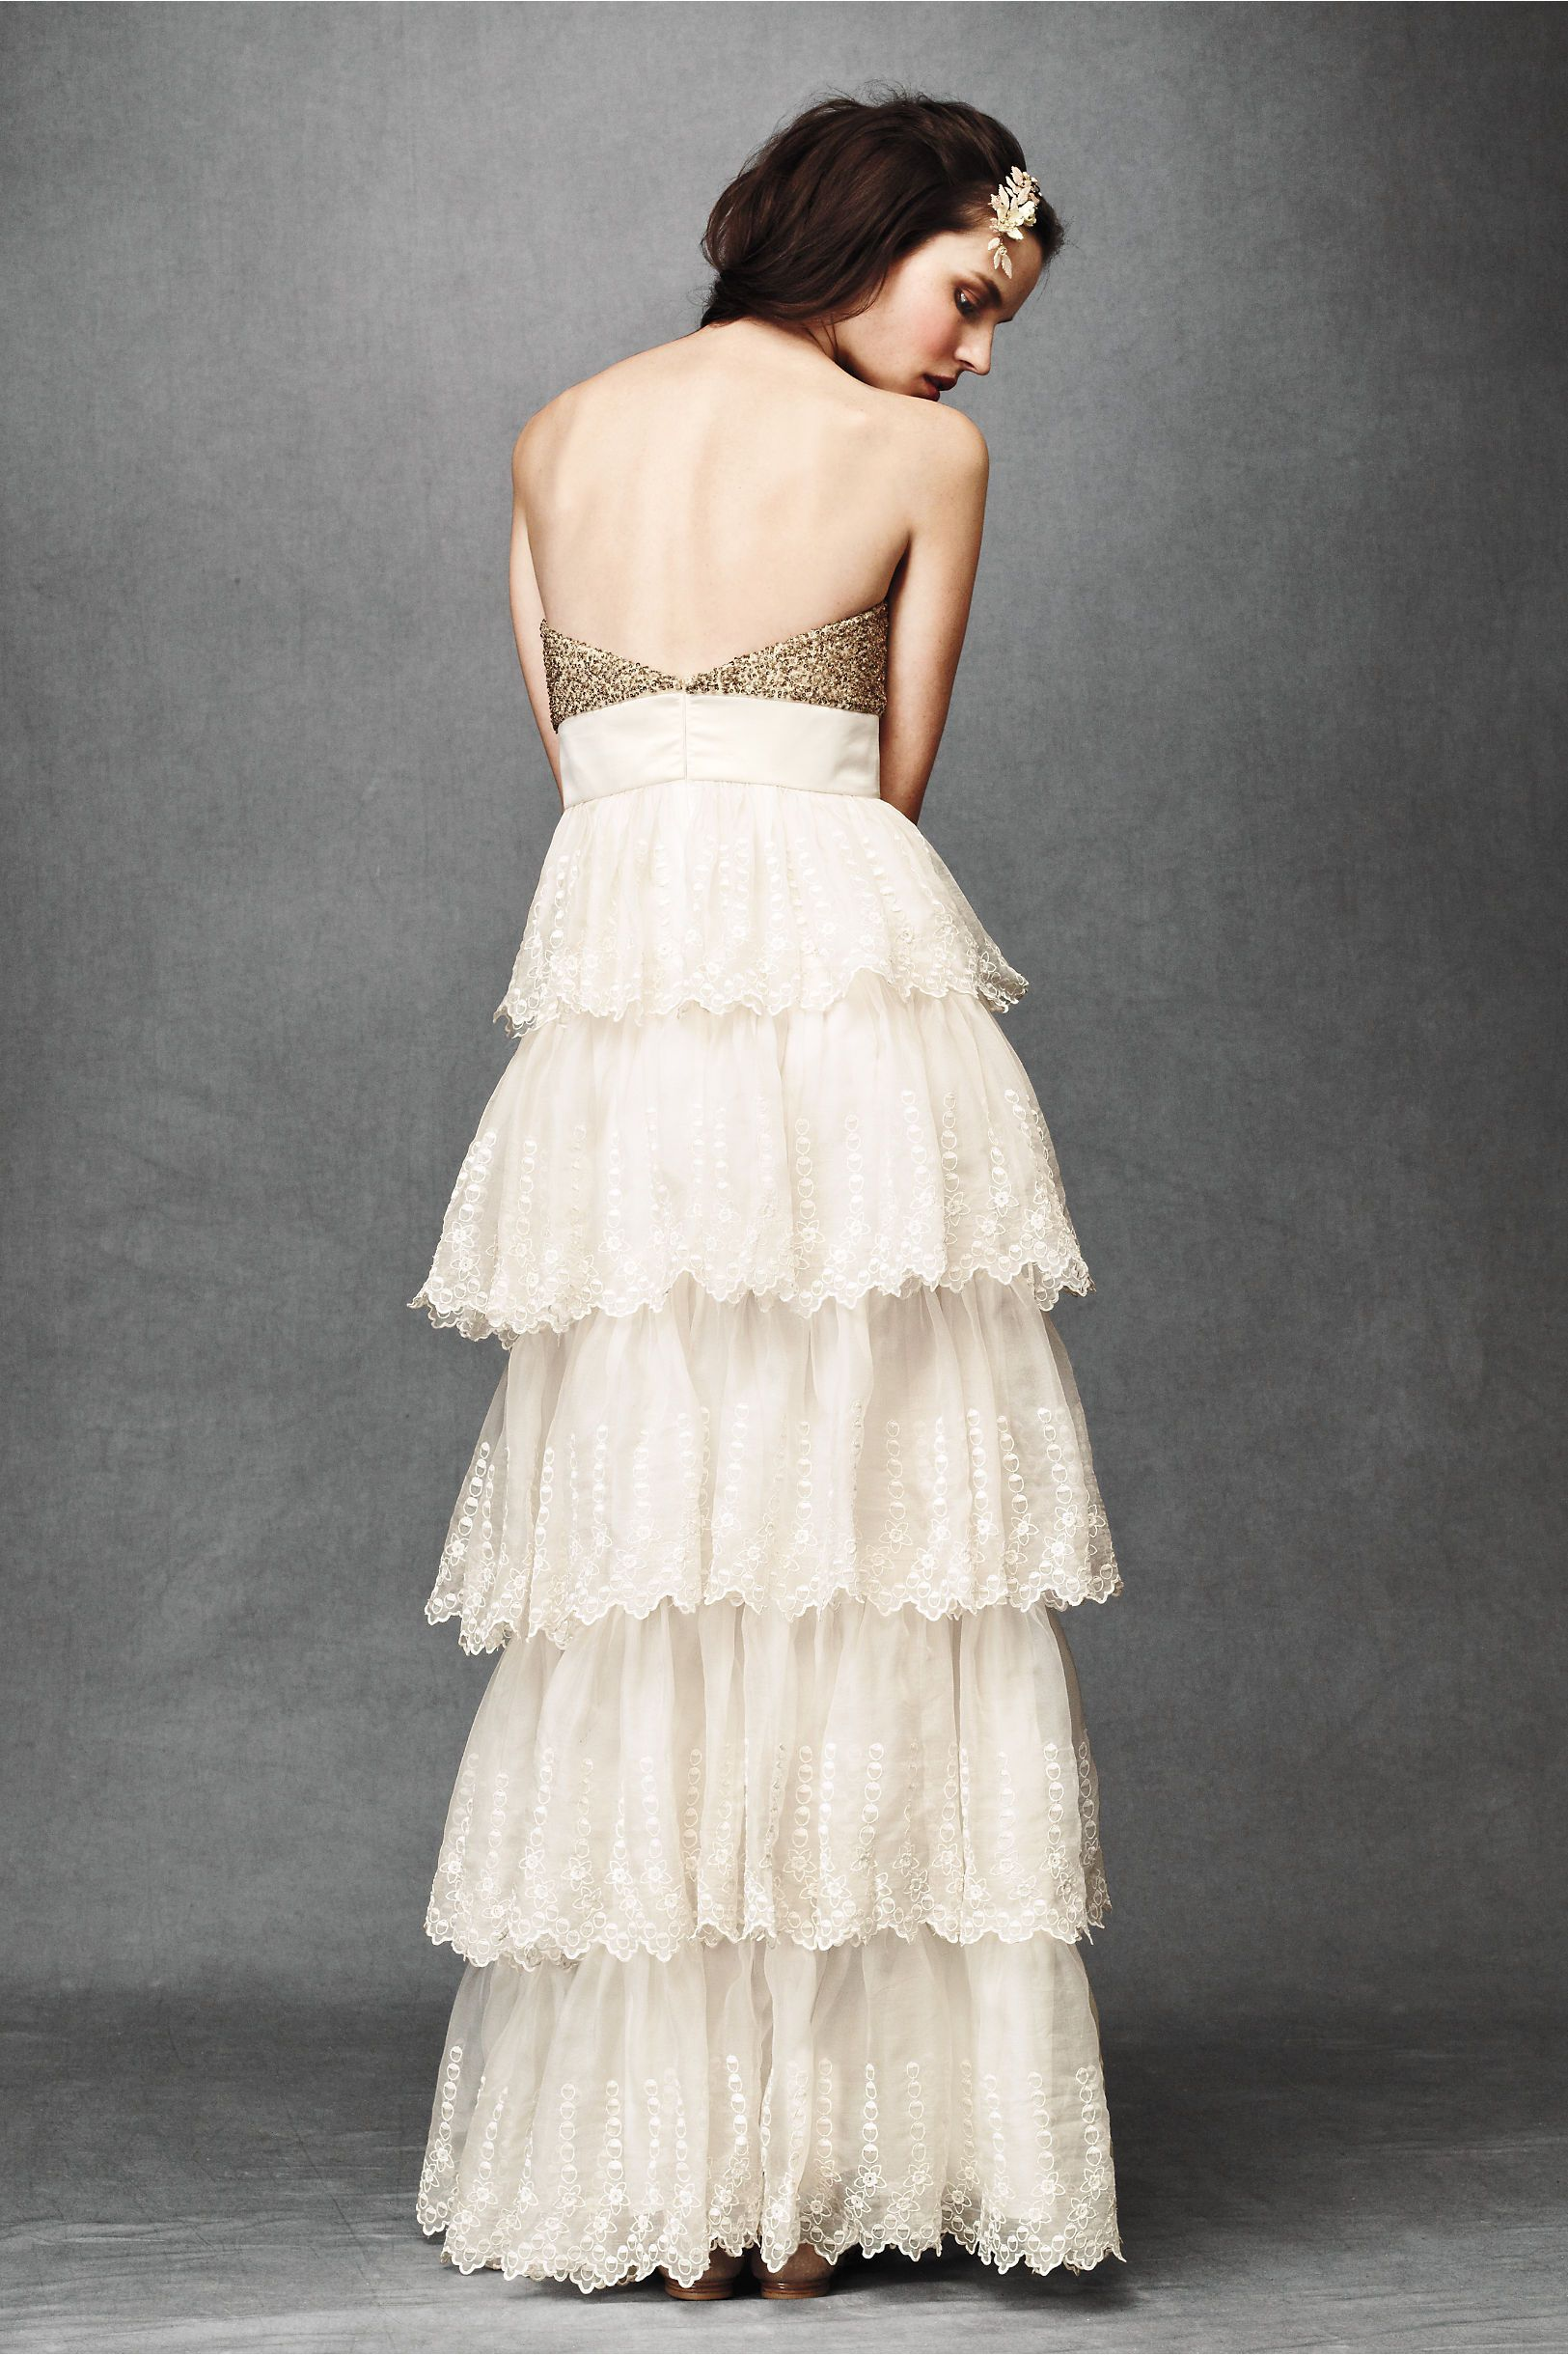 Burnished organza gown in shop the bride wedding dresses at bhldn